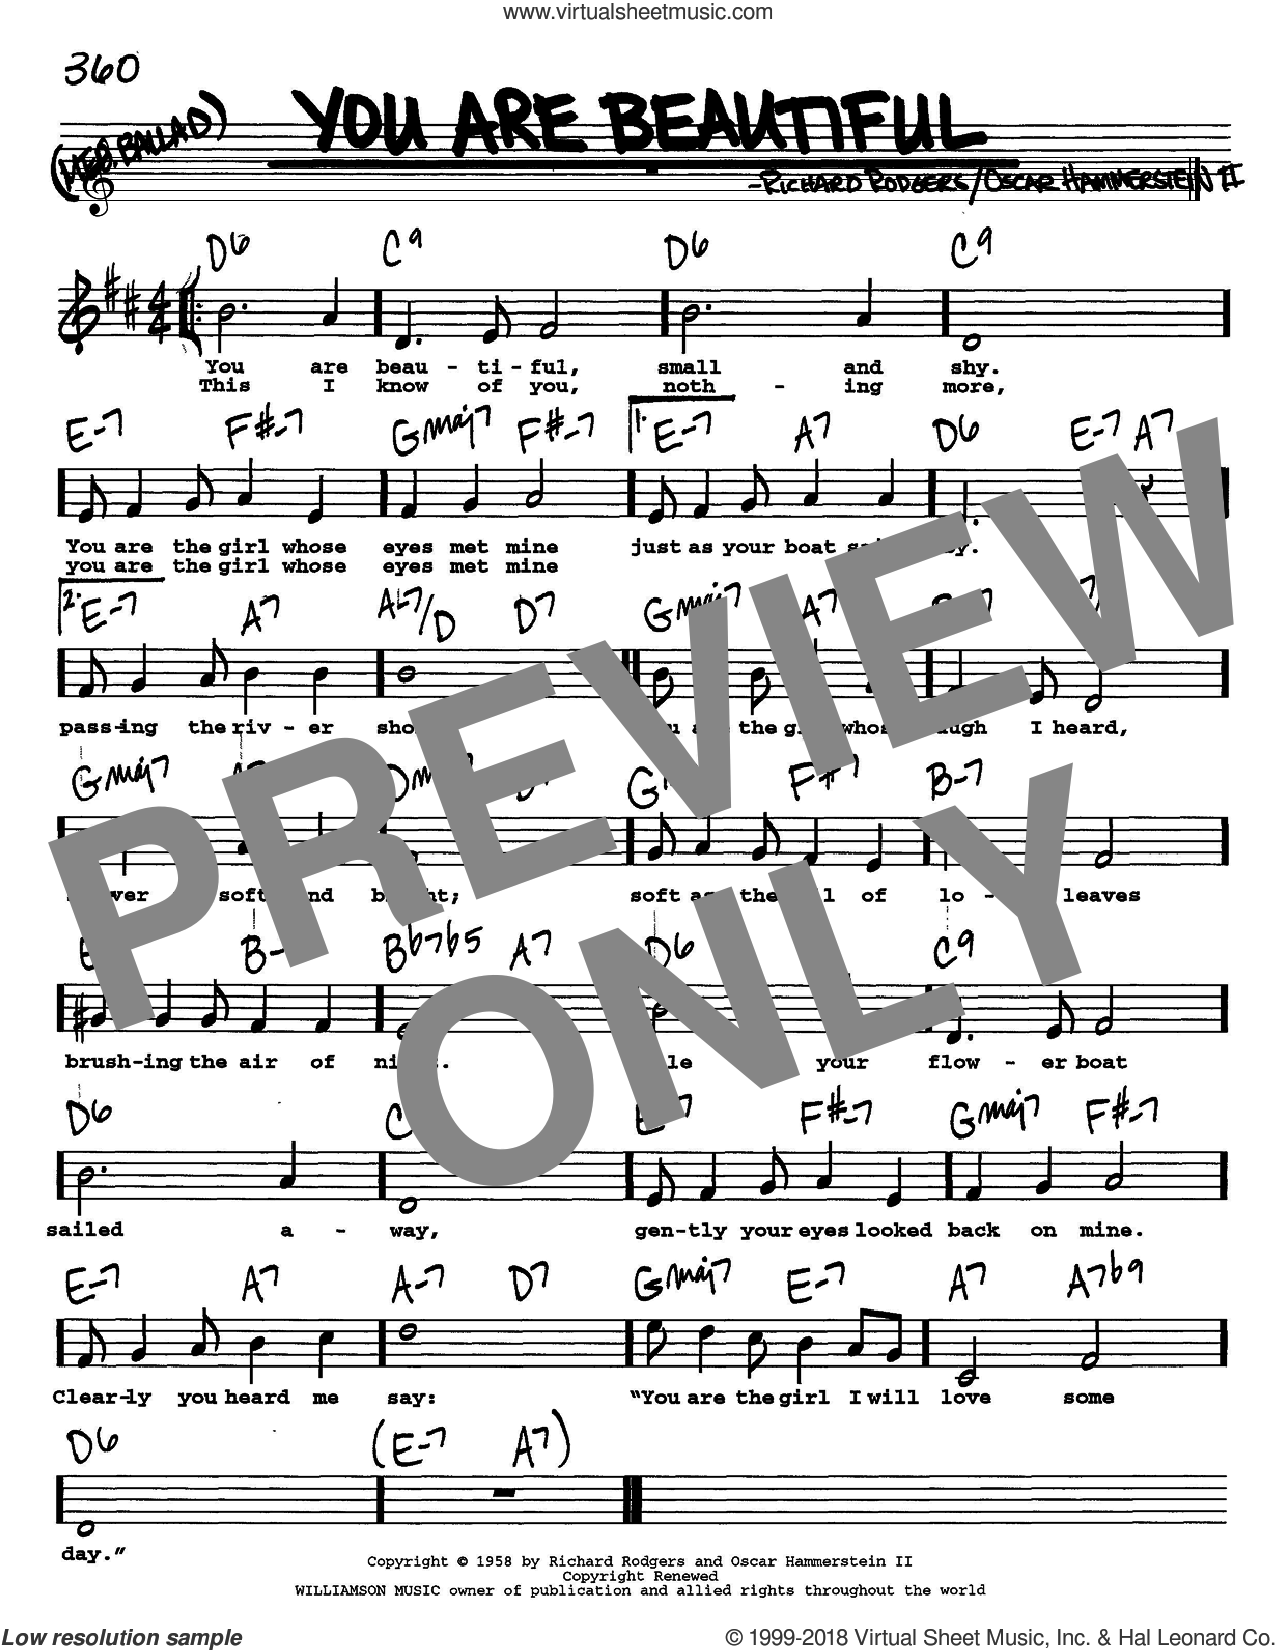 You Are Beautiful sheet music for voice and other instruments  by Rodgers & Hammerstein, Oscar II Hammerstein and Richard Rodgers, intermediate skill level